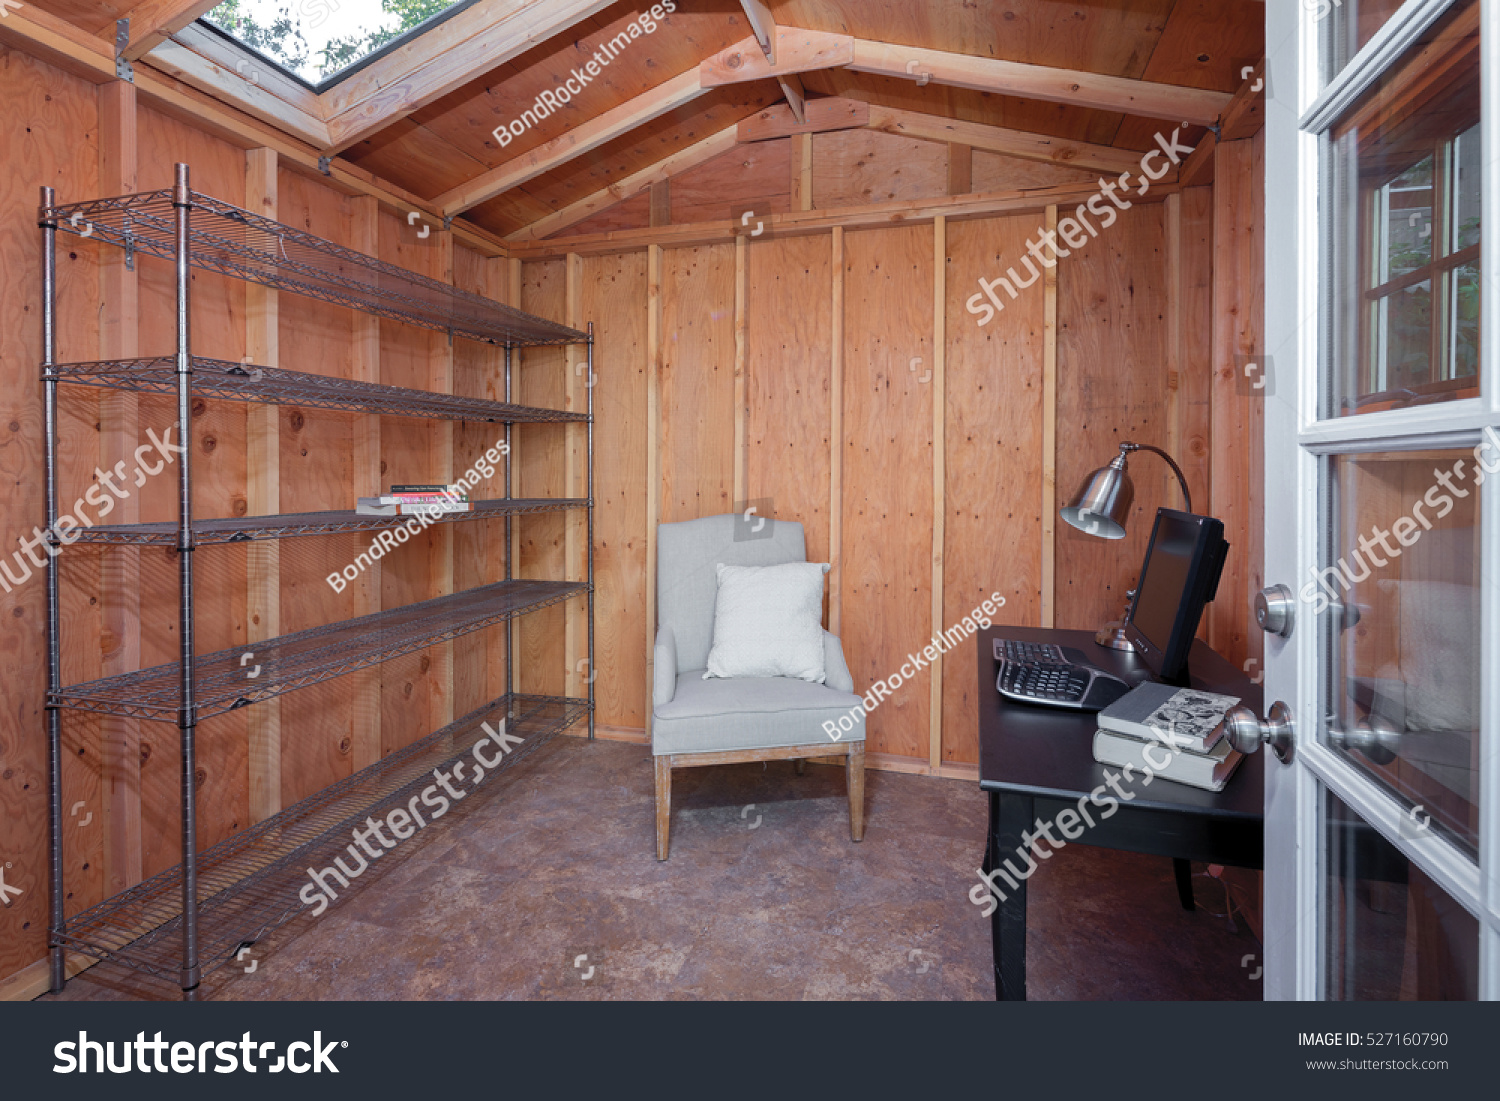 wooden garden shed home office. Inside Of A Wooden Garden Shed Used As Home Office. Office R